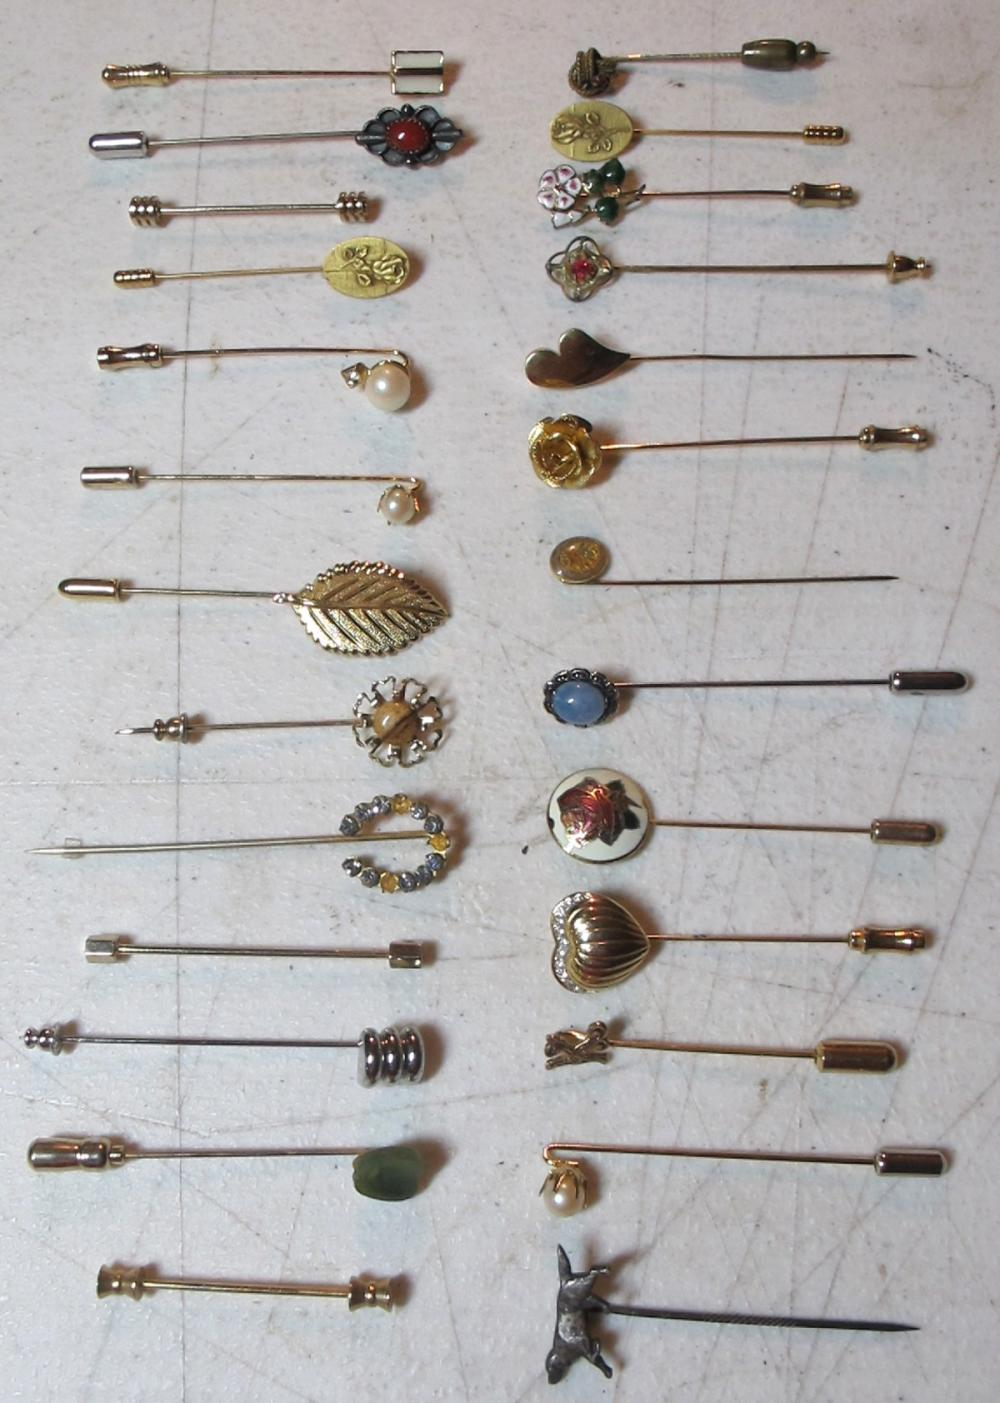 26 DIFFERENT JEWELRY STICKPINS ENAMEL FLORAL FIGURAL ETC